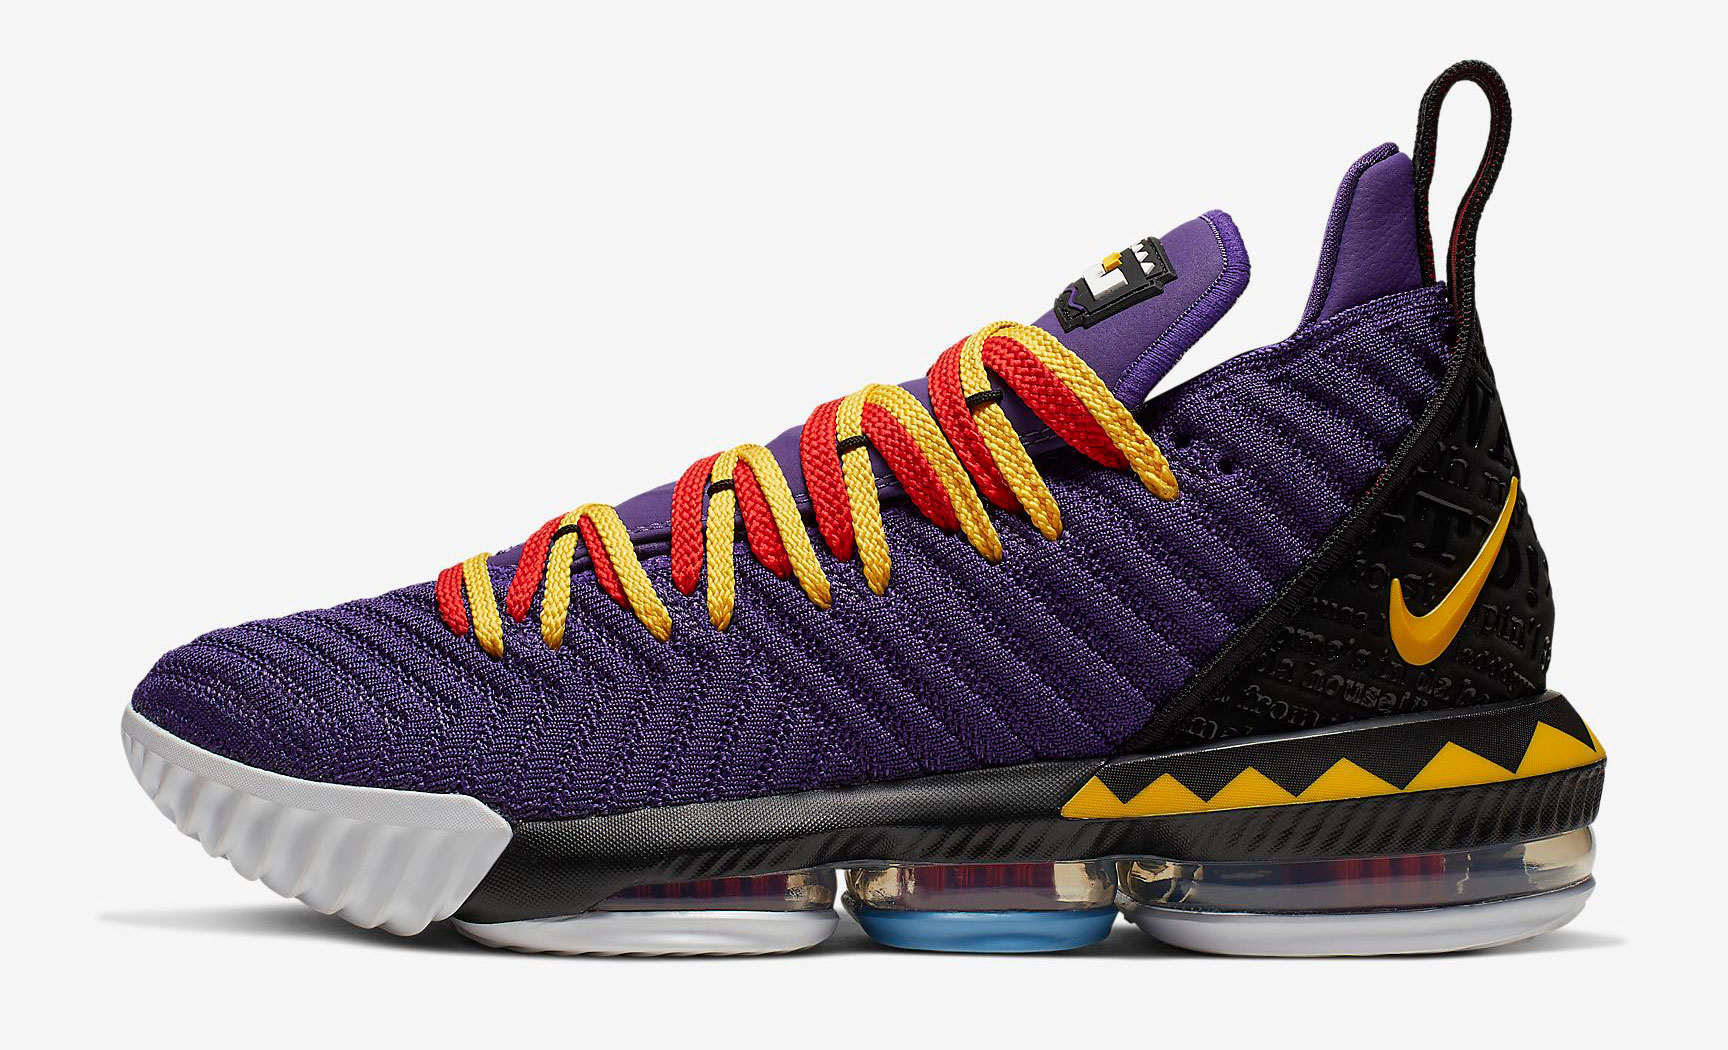 nike-lebron-16-martin-release-date-where-to-buy